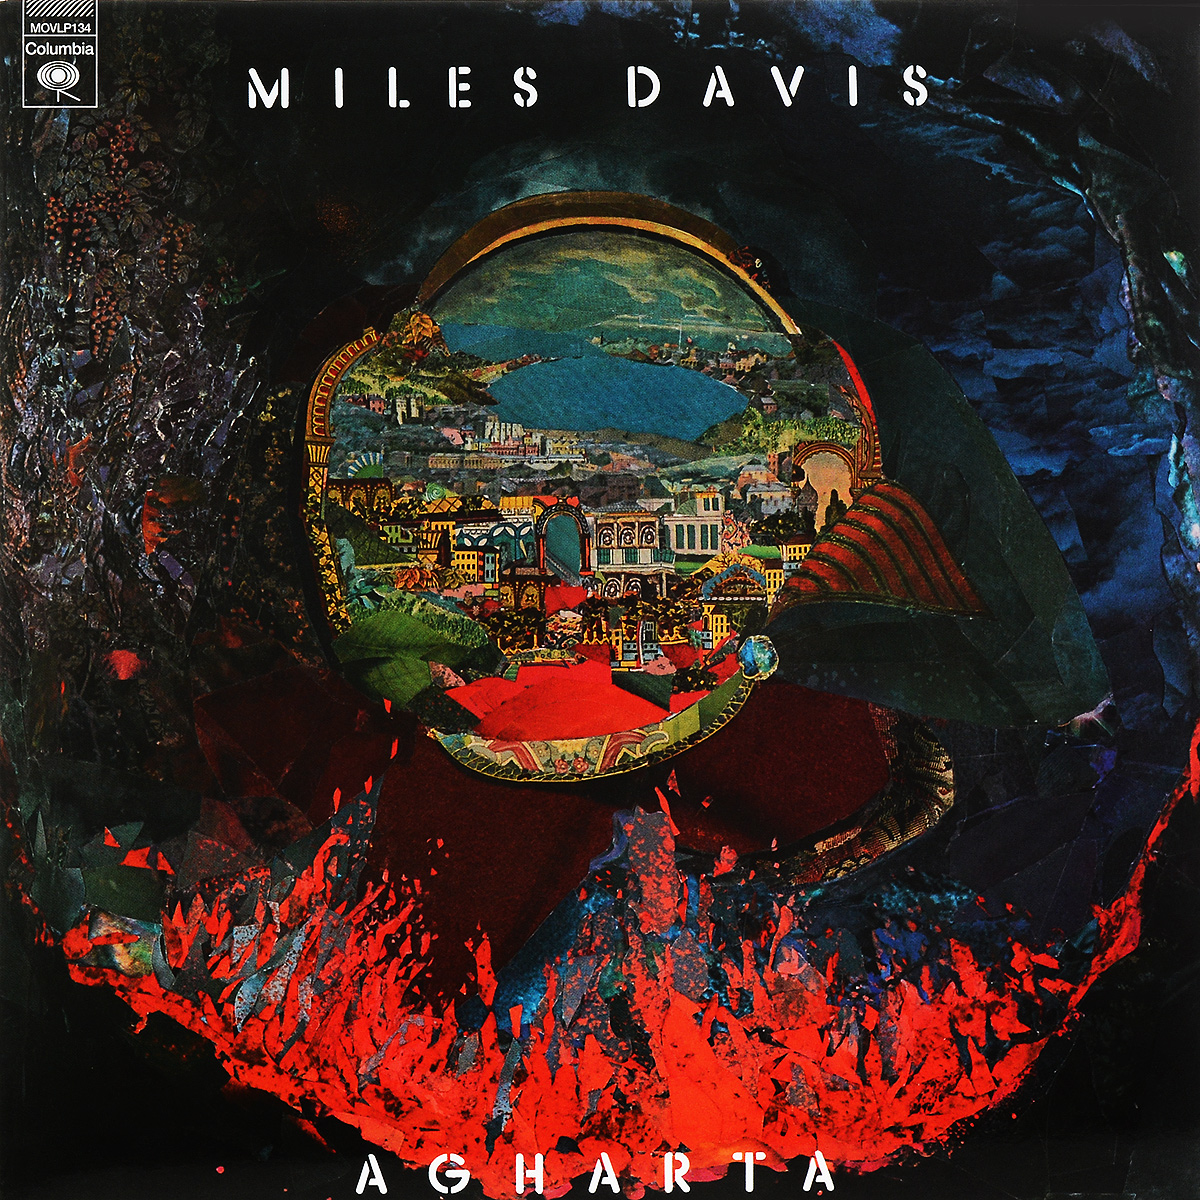 Майлз Дэвис DAVIS, MILES Agharta -Hq/Gatefold- 2LP виниловые пластинки haken the mountain 2lp cd gatefold